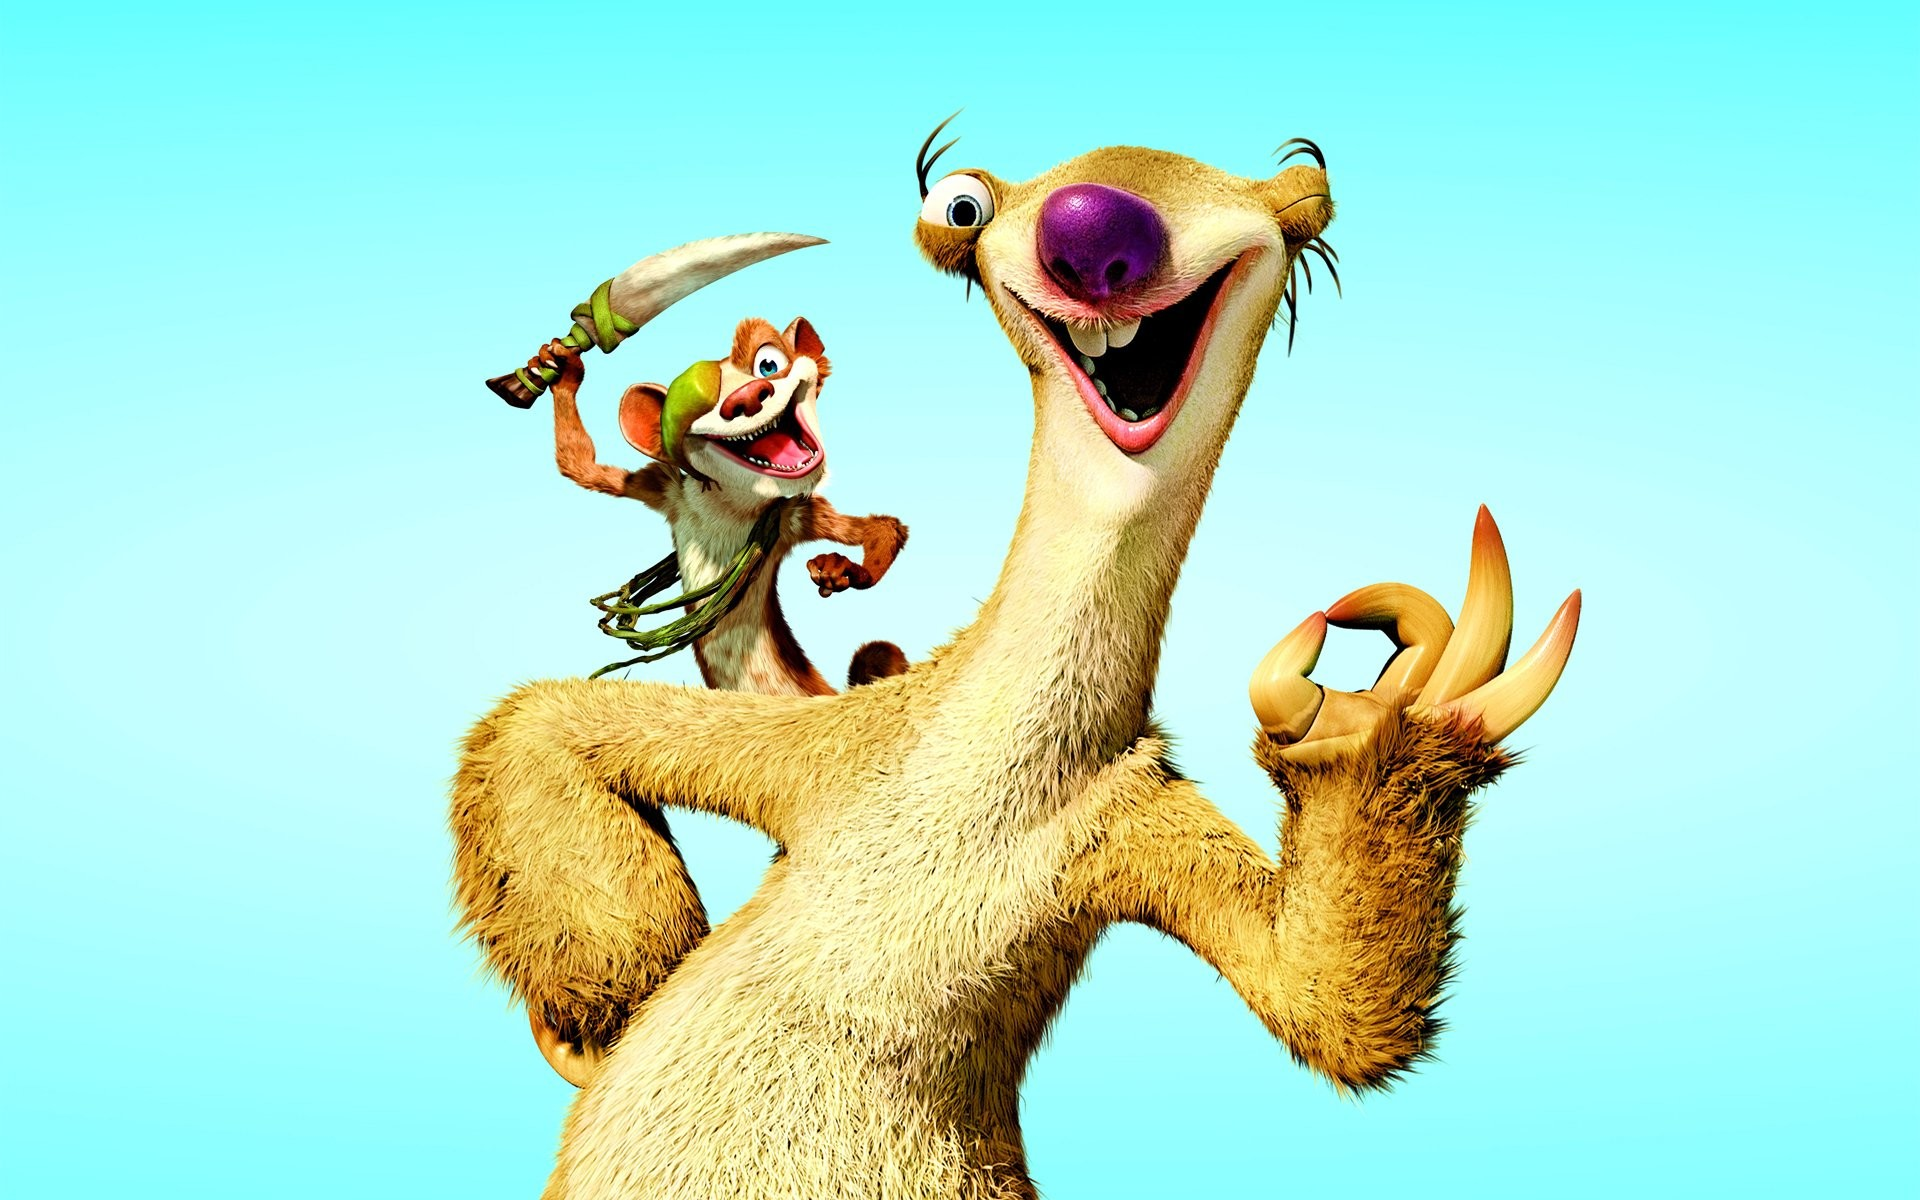 1920x1200 Movie - Ice Age: Continental Drift Sid (Ice Age) Wallpaper